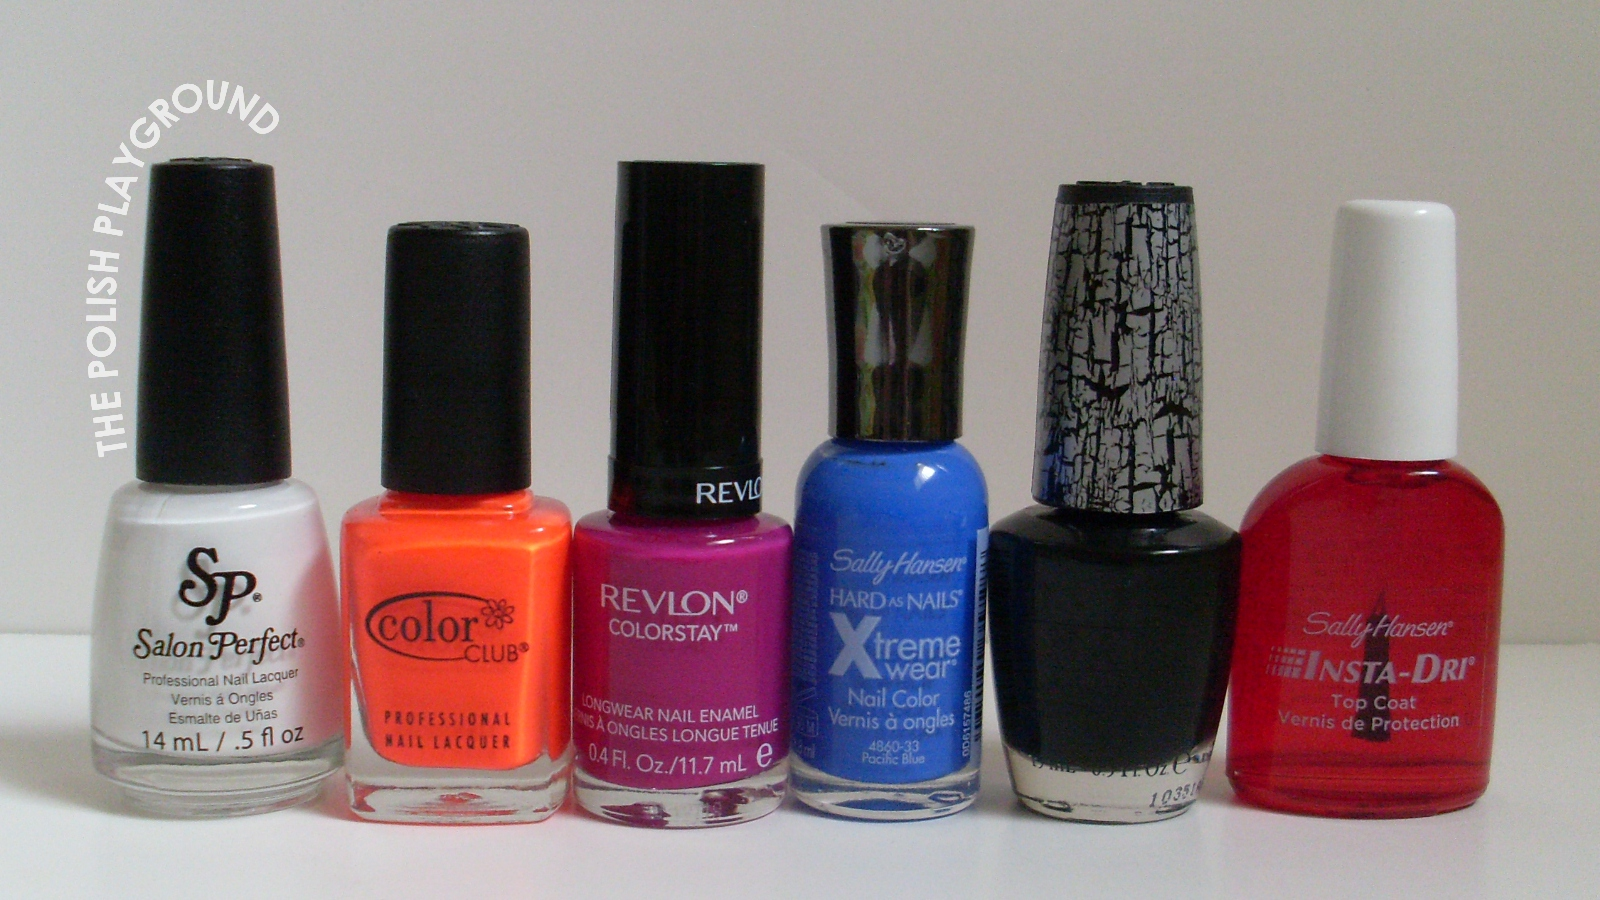 Salon Perfect, Color Club, Revlon, Sally Hansen, OPI